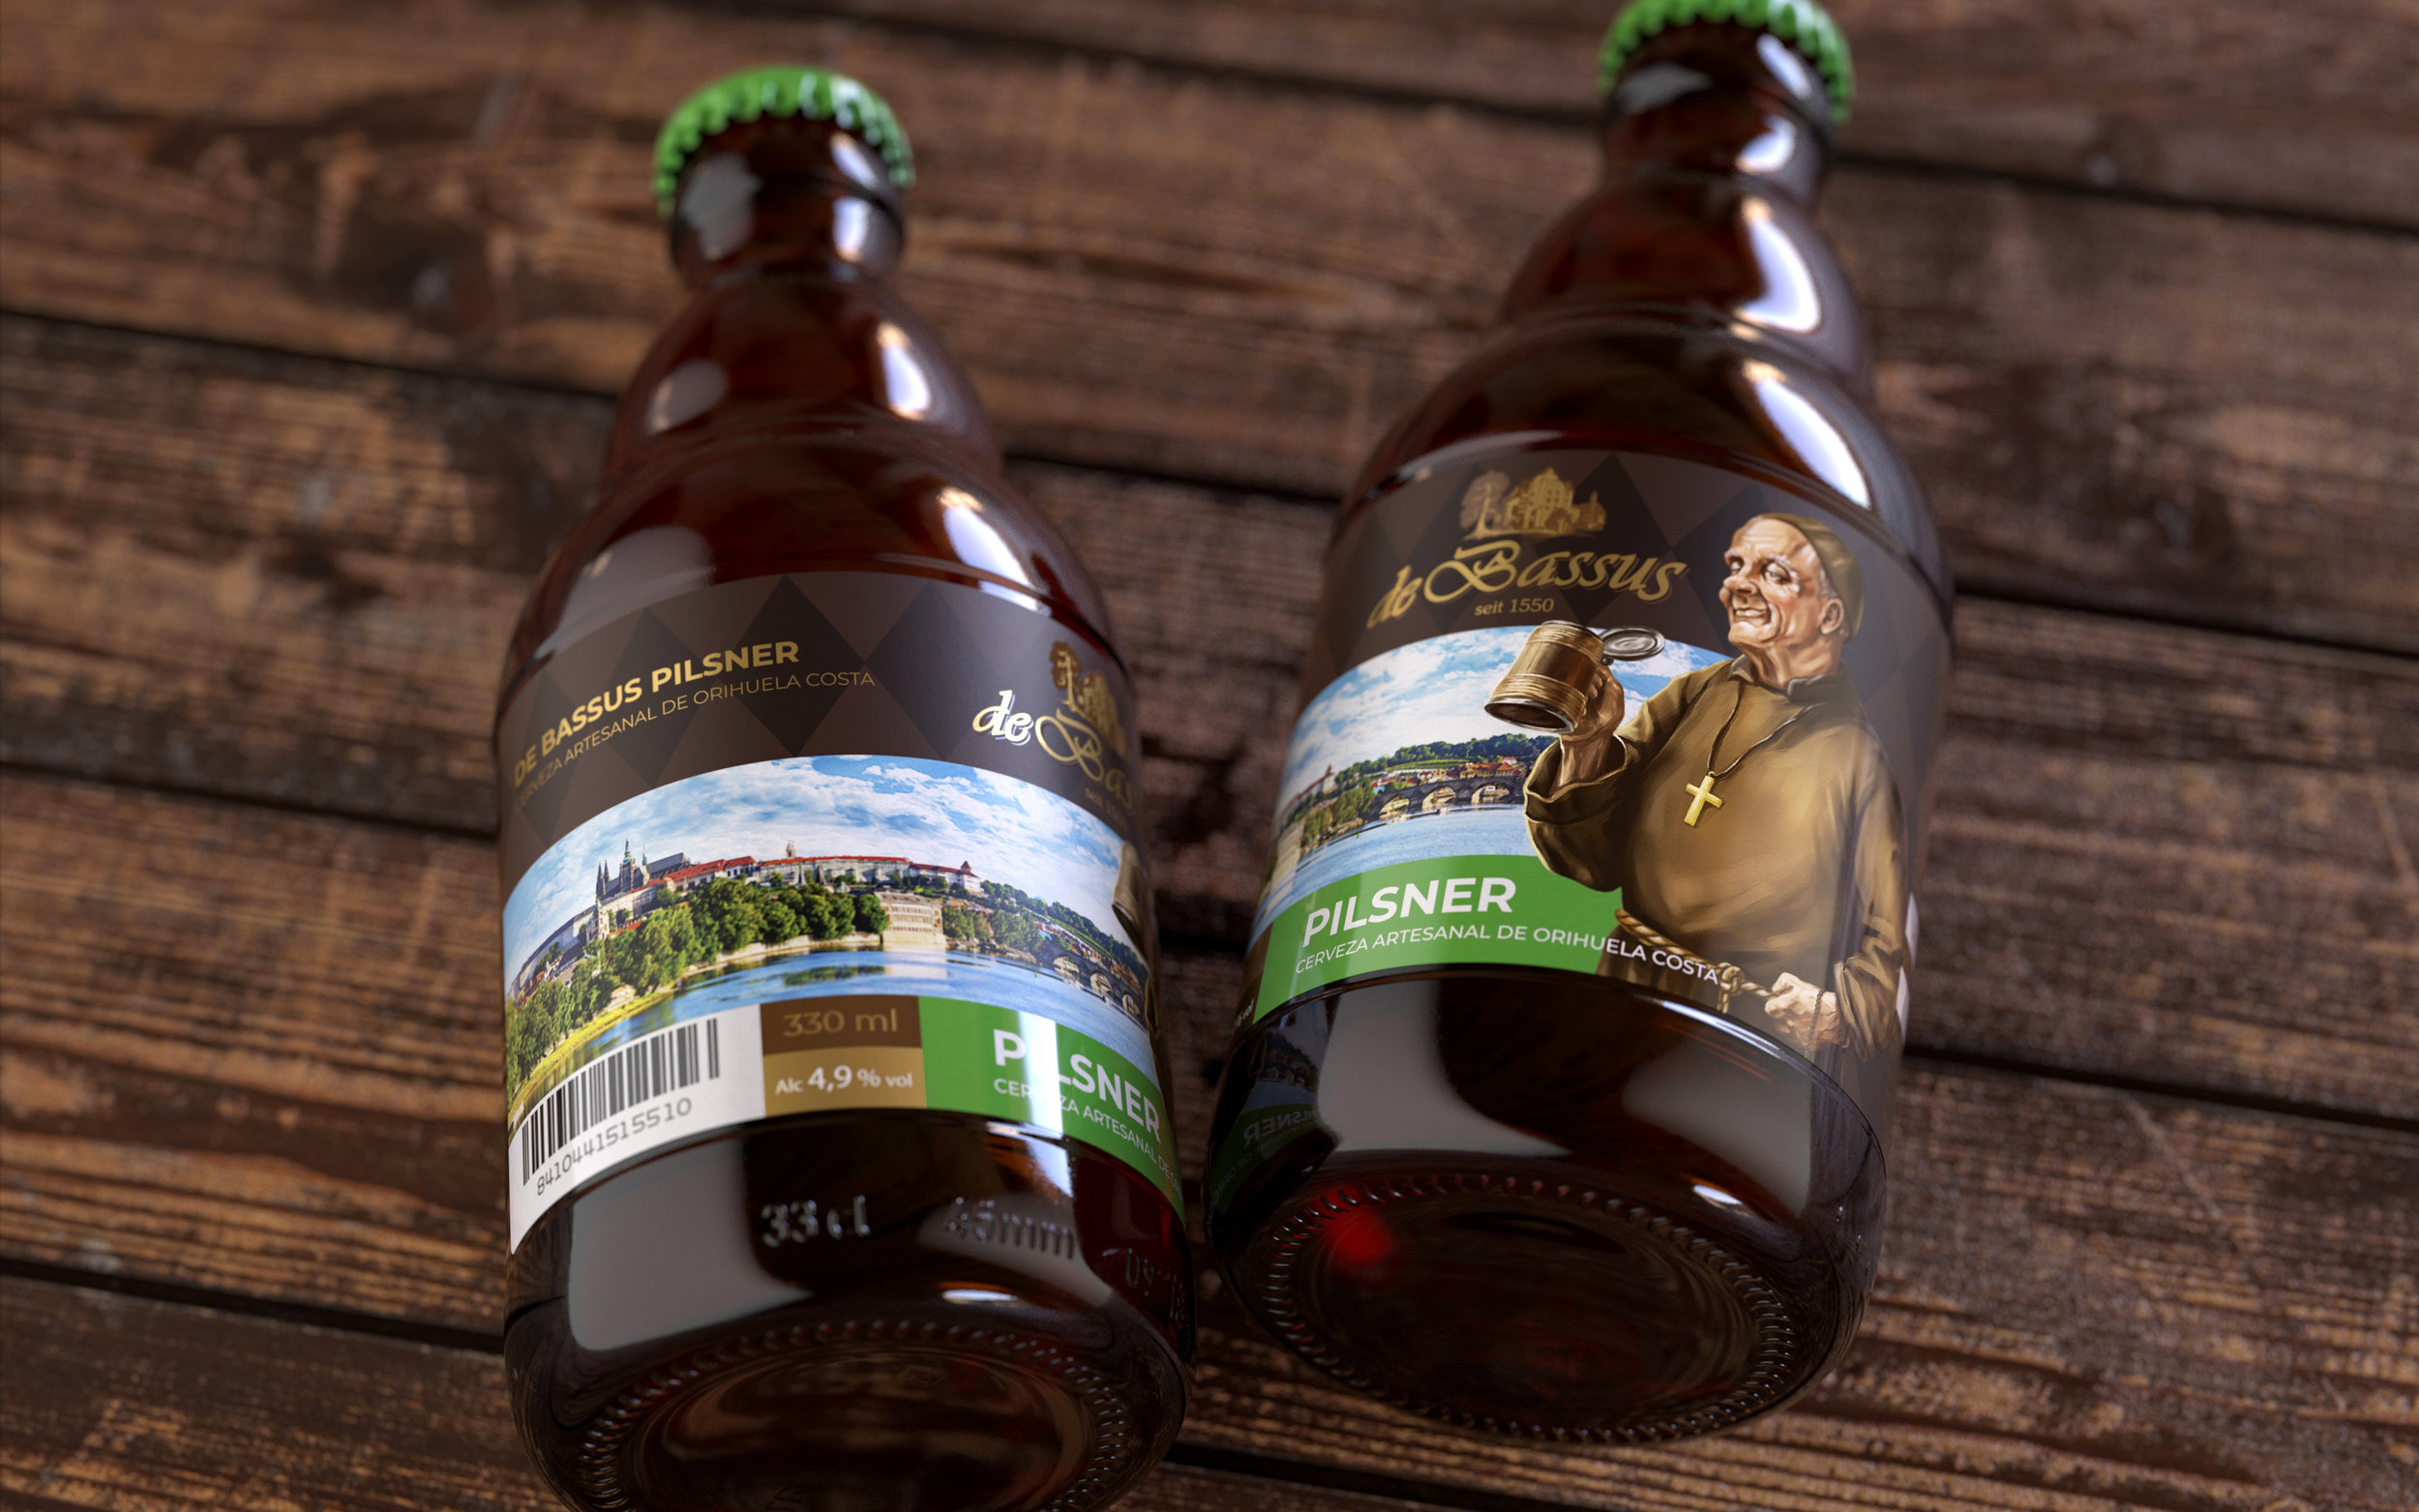 De Bassus, Authentic Bavarian Brewing Traditions in Spain / World Brand Design Society